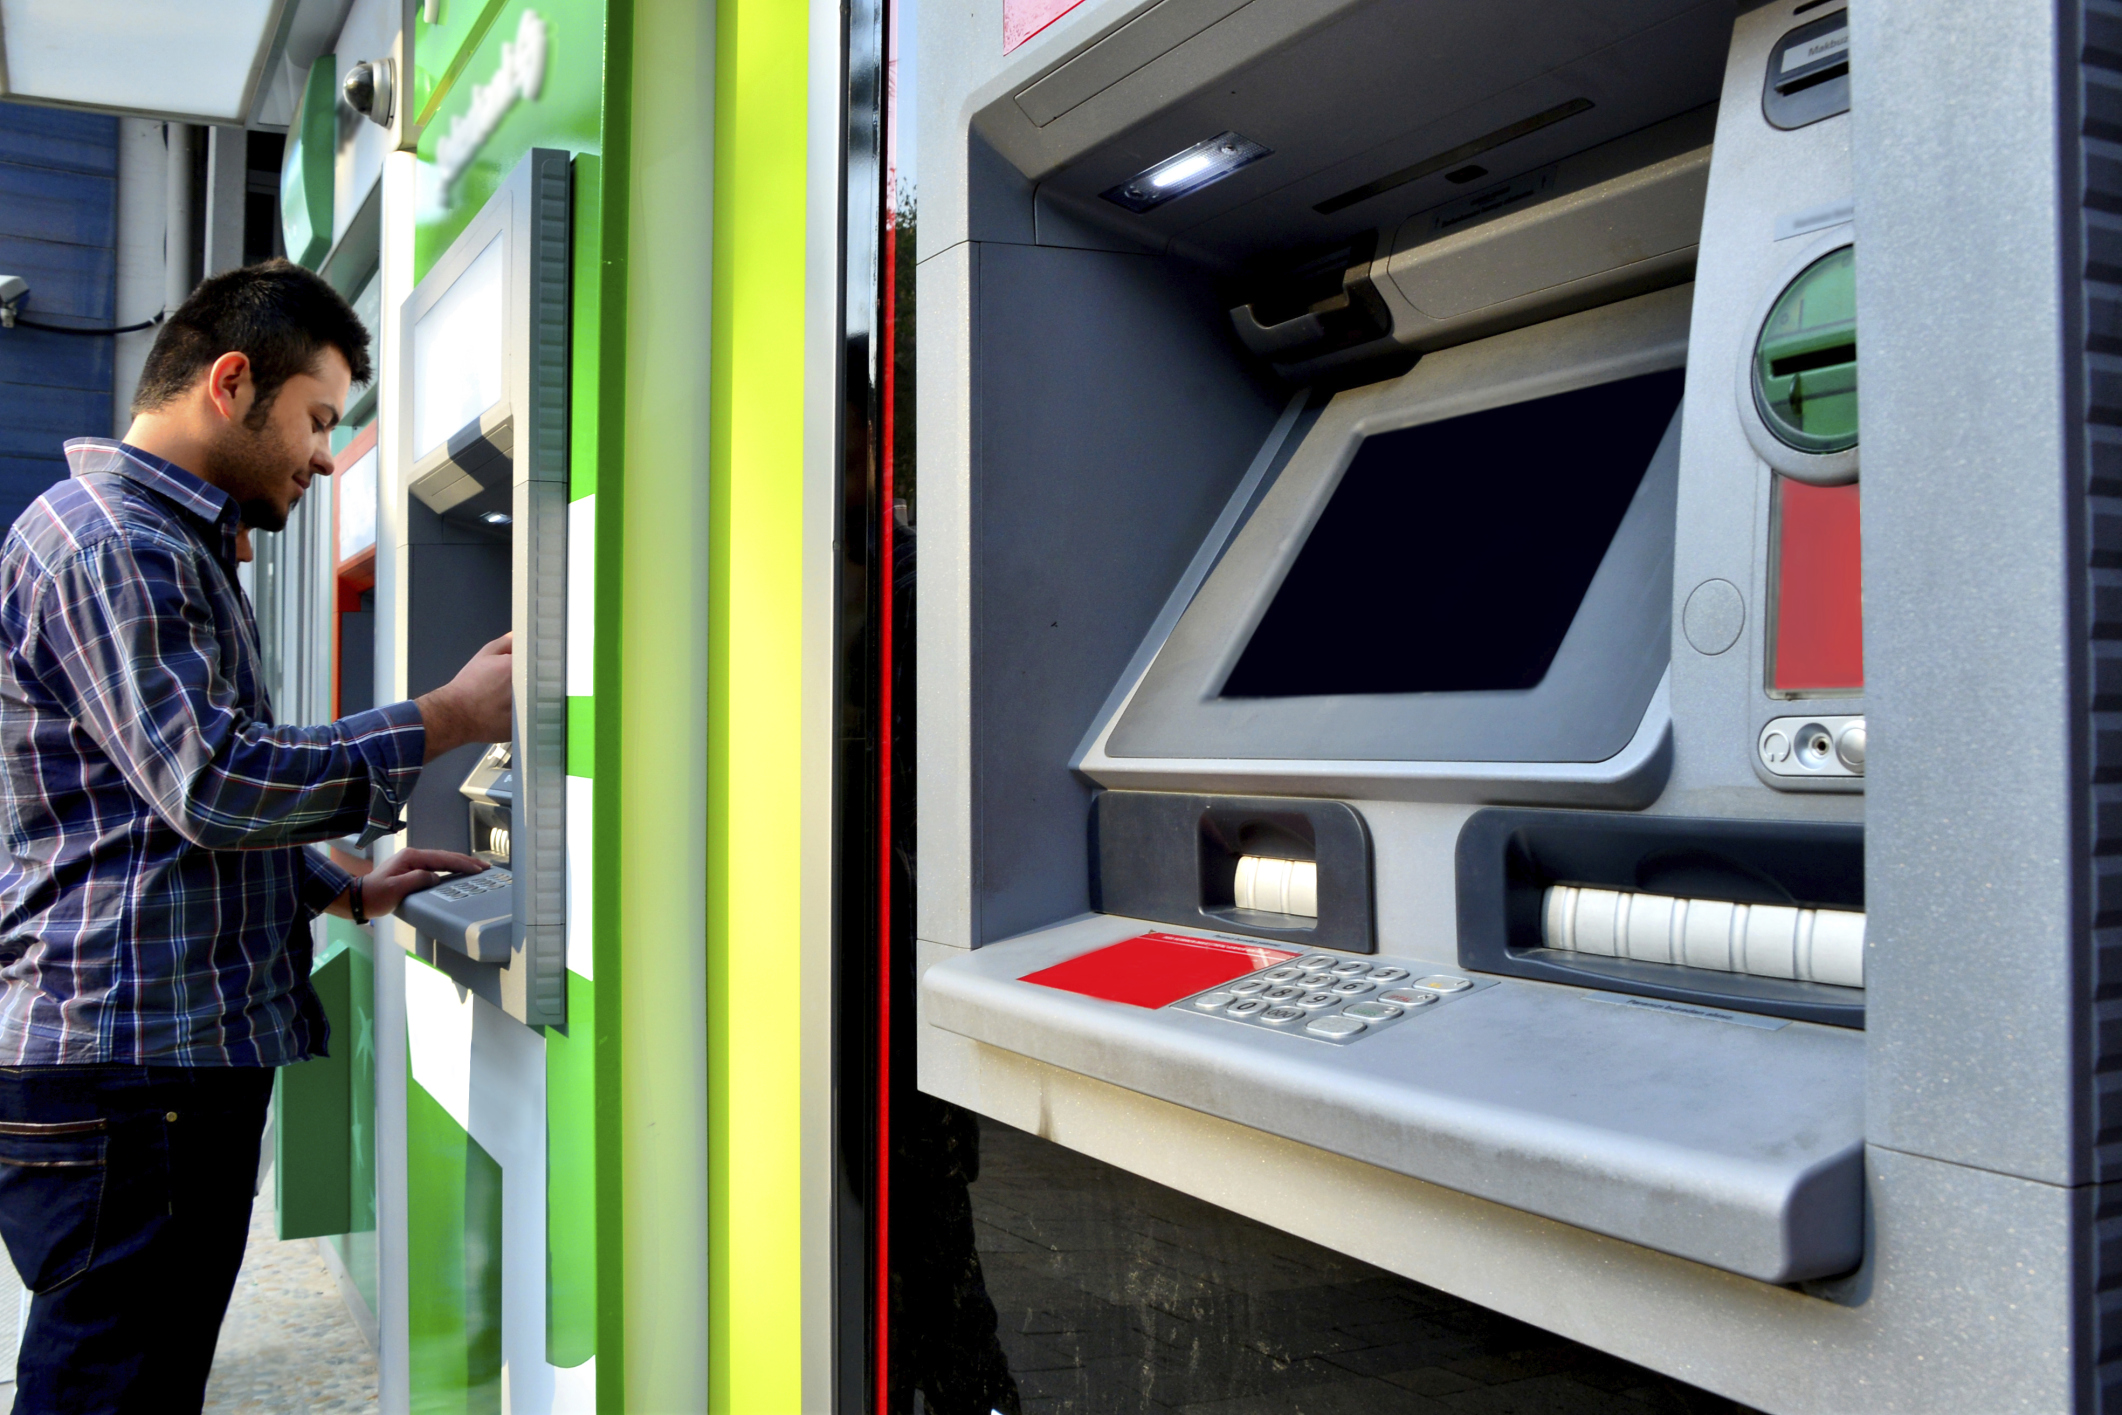 How does ATM skimming work? | HowStuffWorks